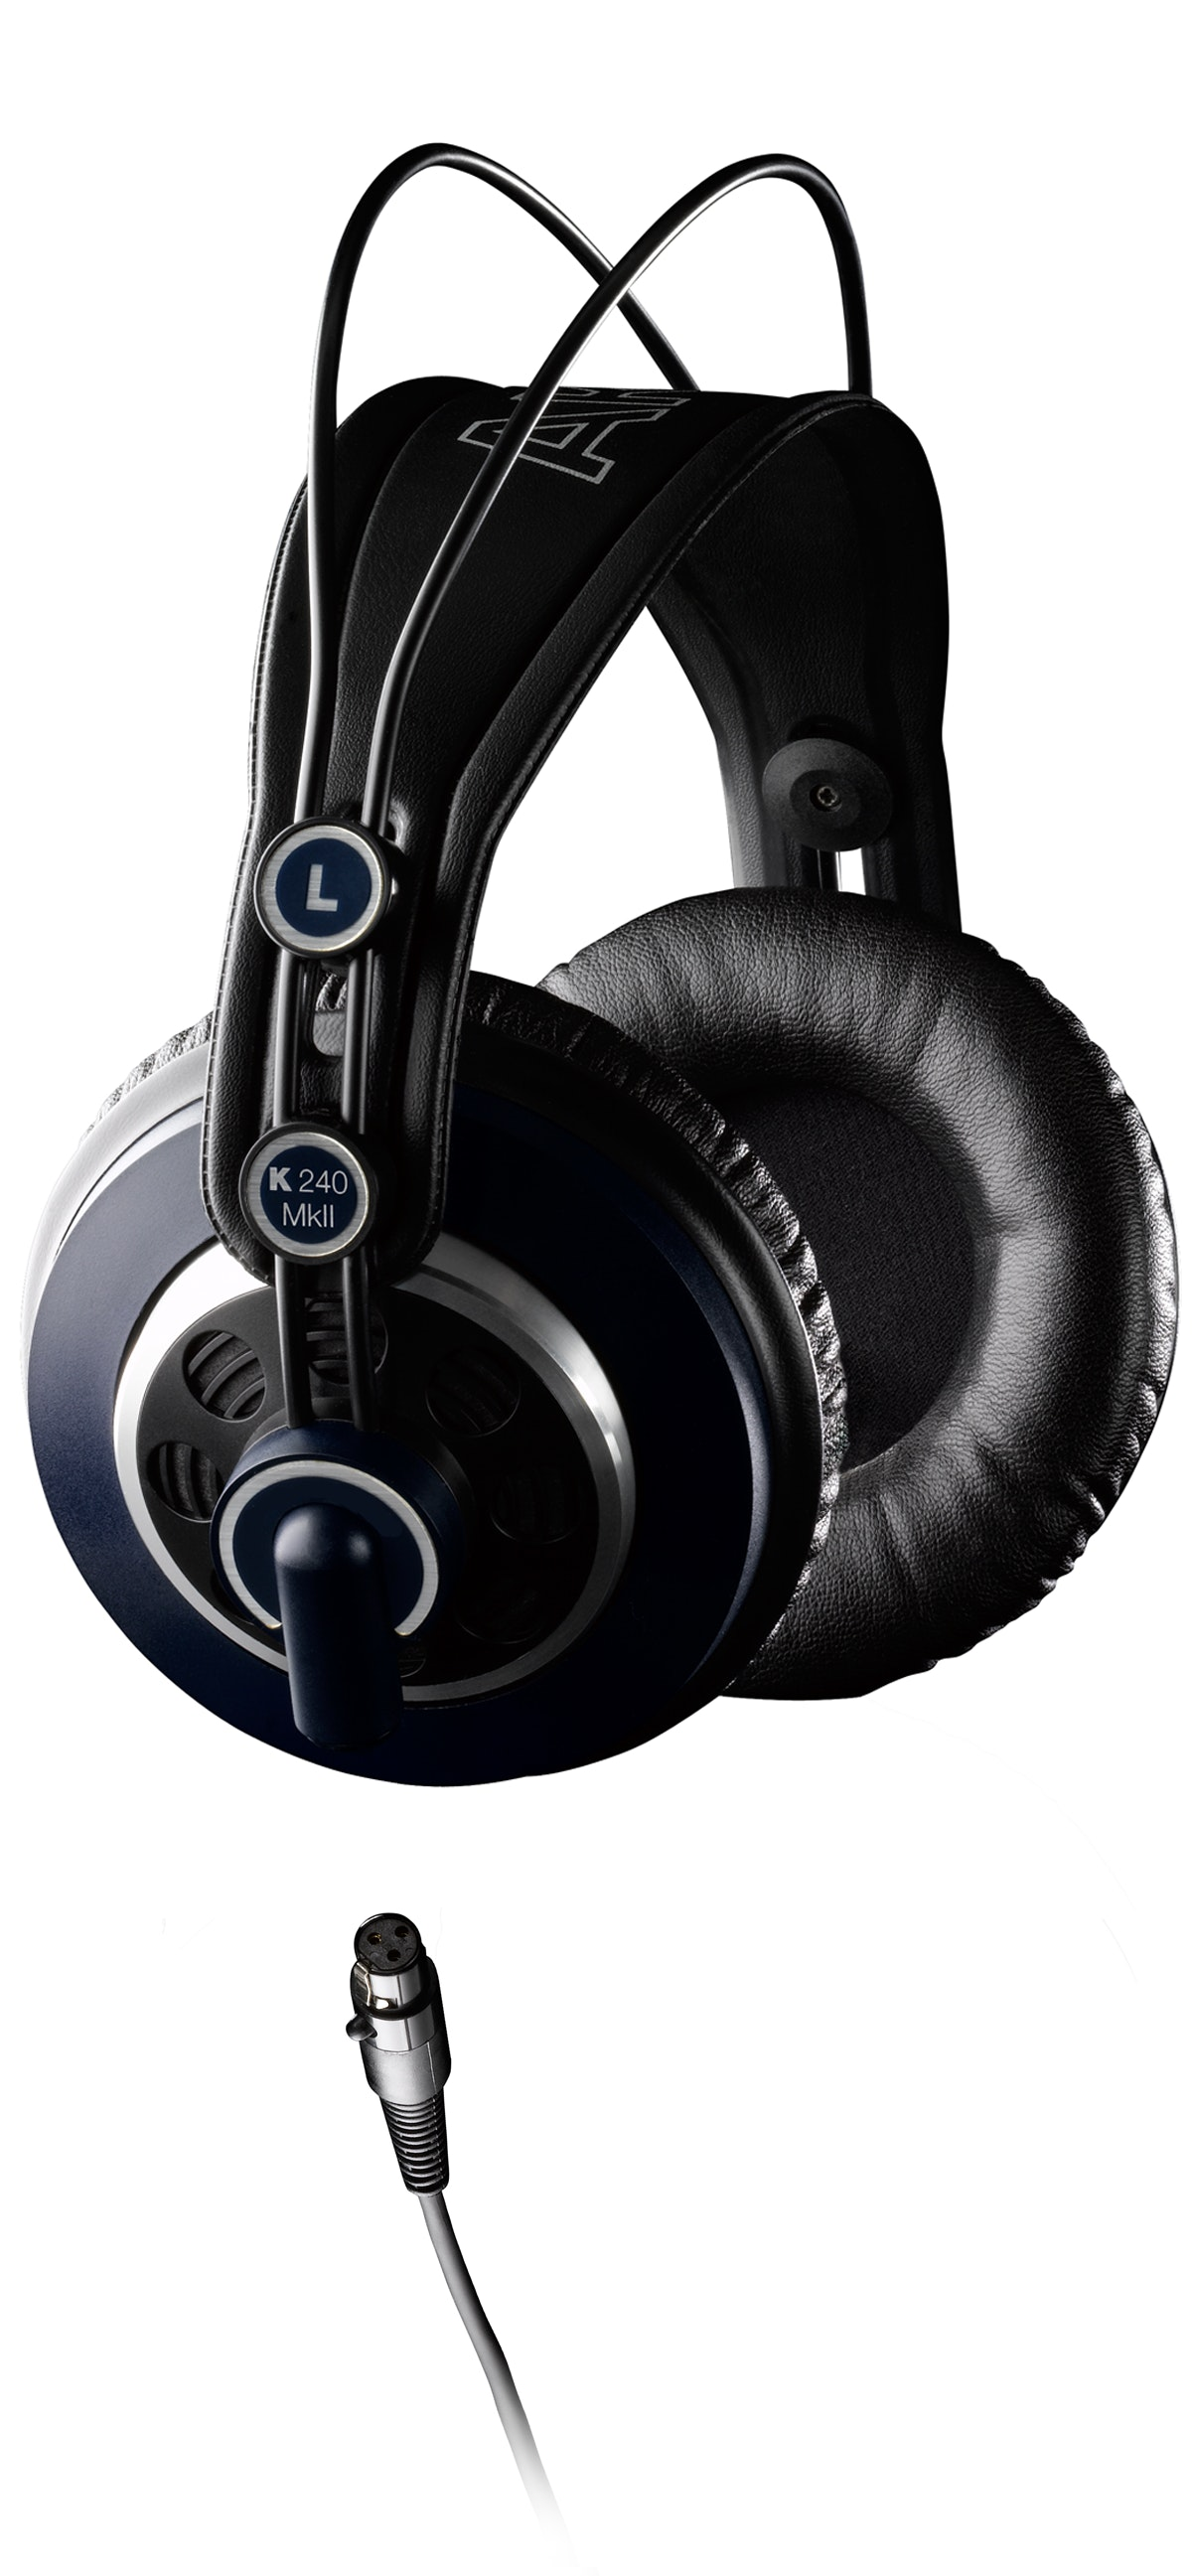 K240 MKII - Professional studio headphones | AKG Acoustics